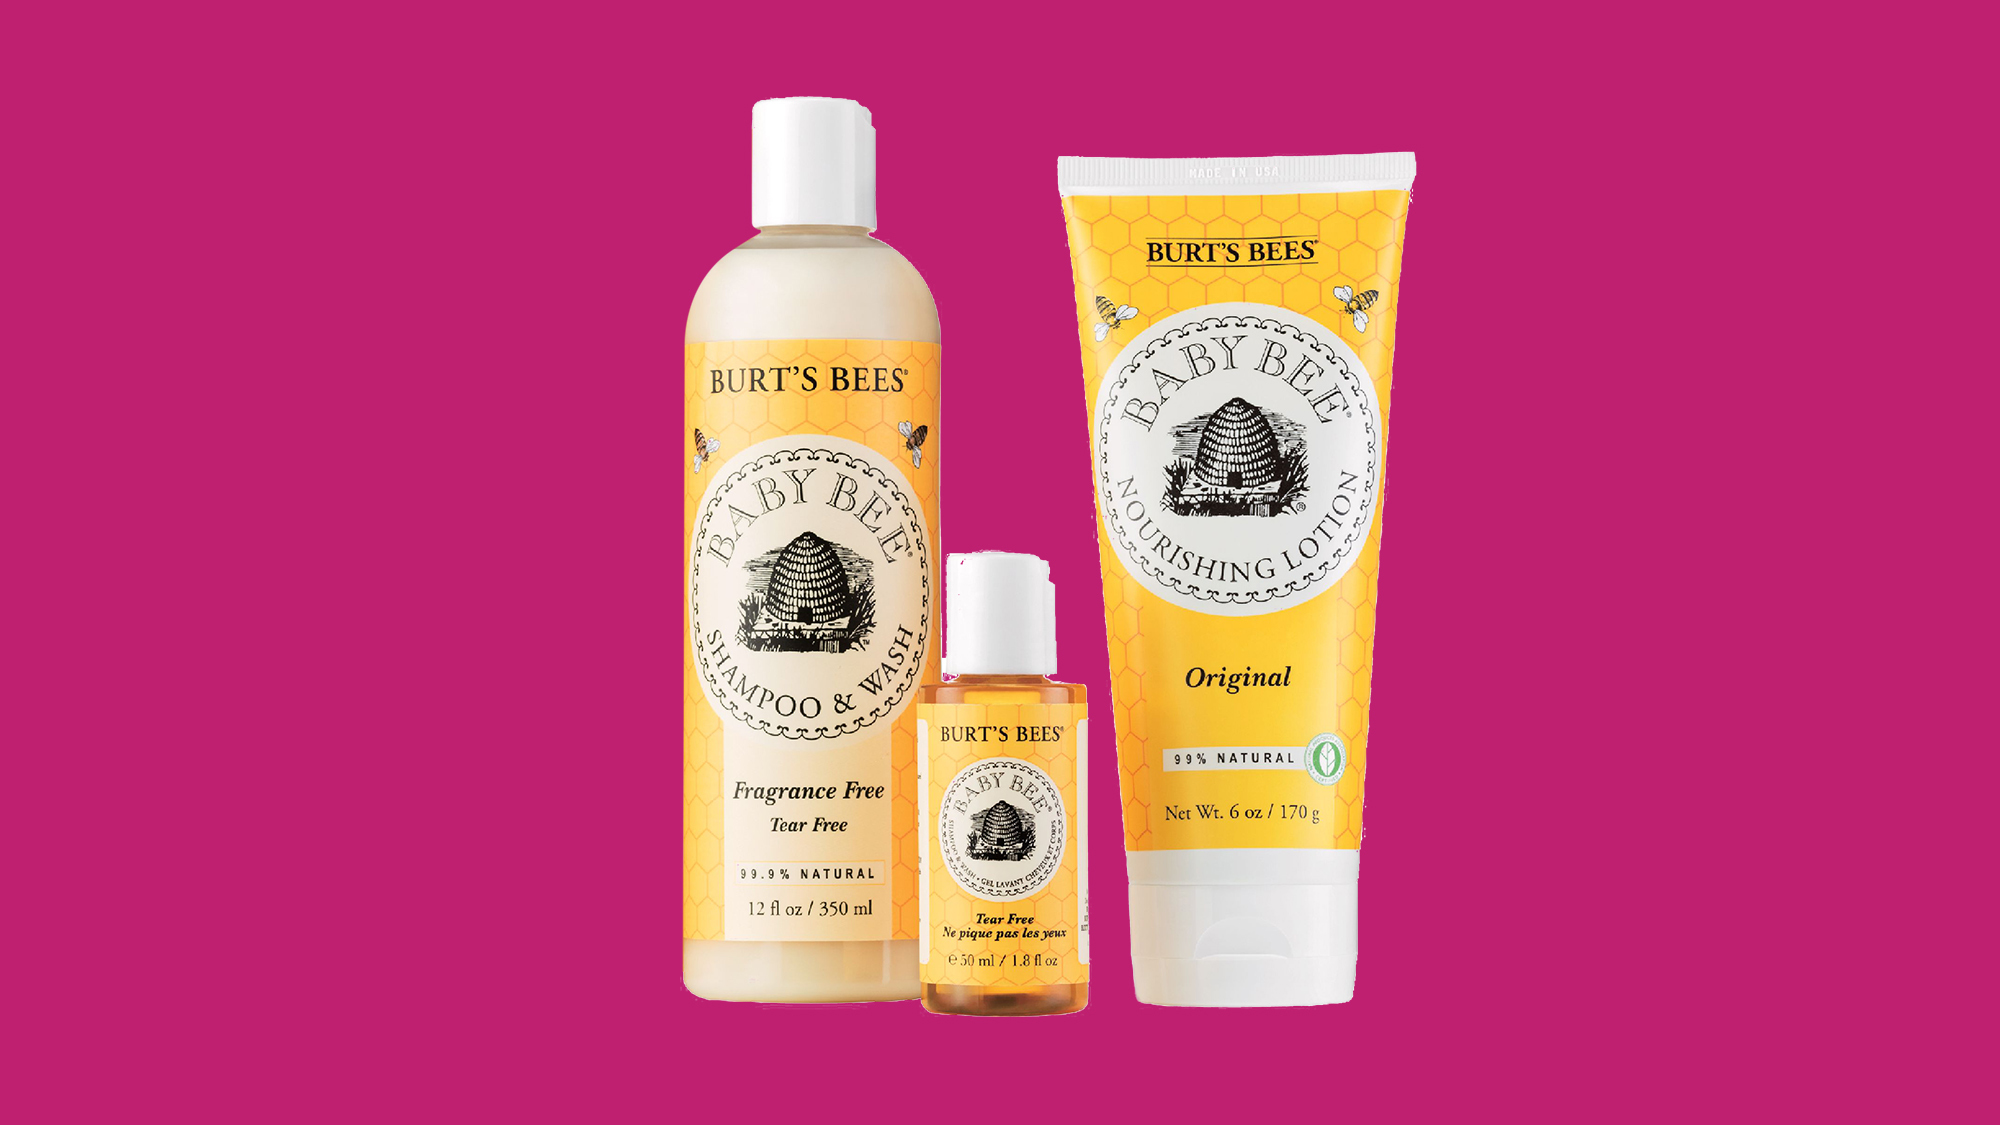 Pamper Your Body gift set from Burt's Bee